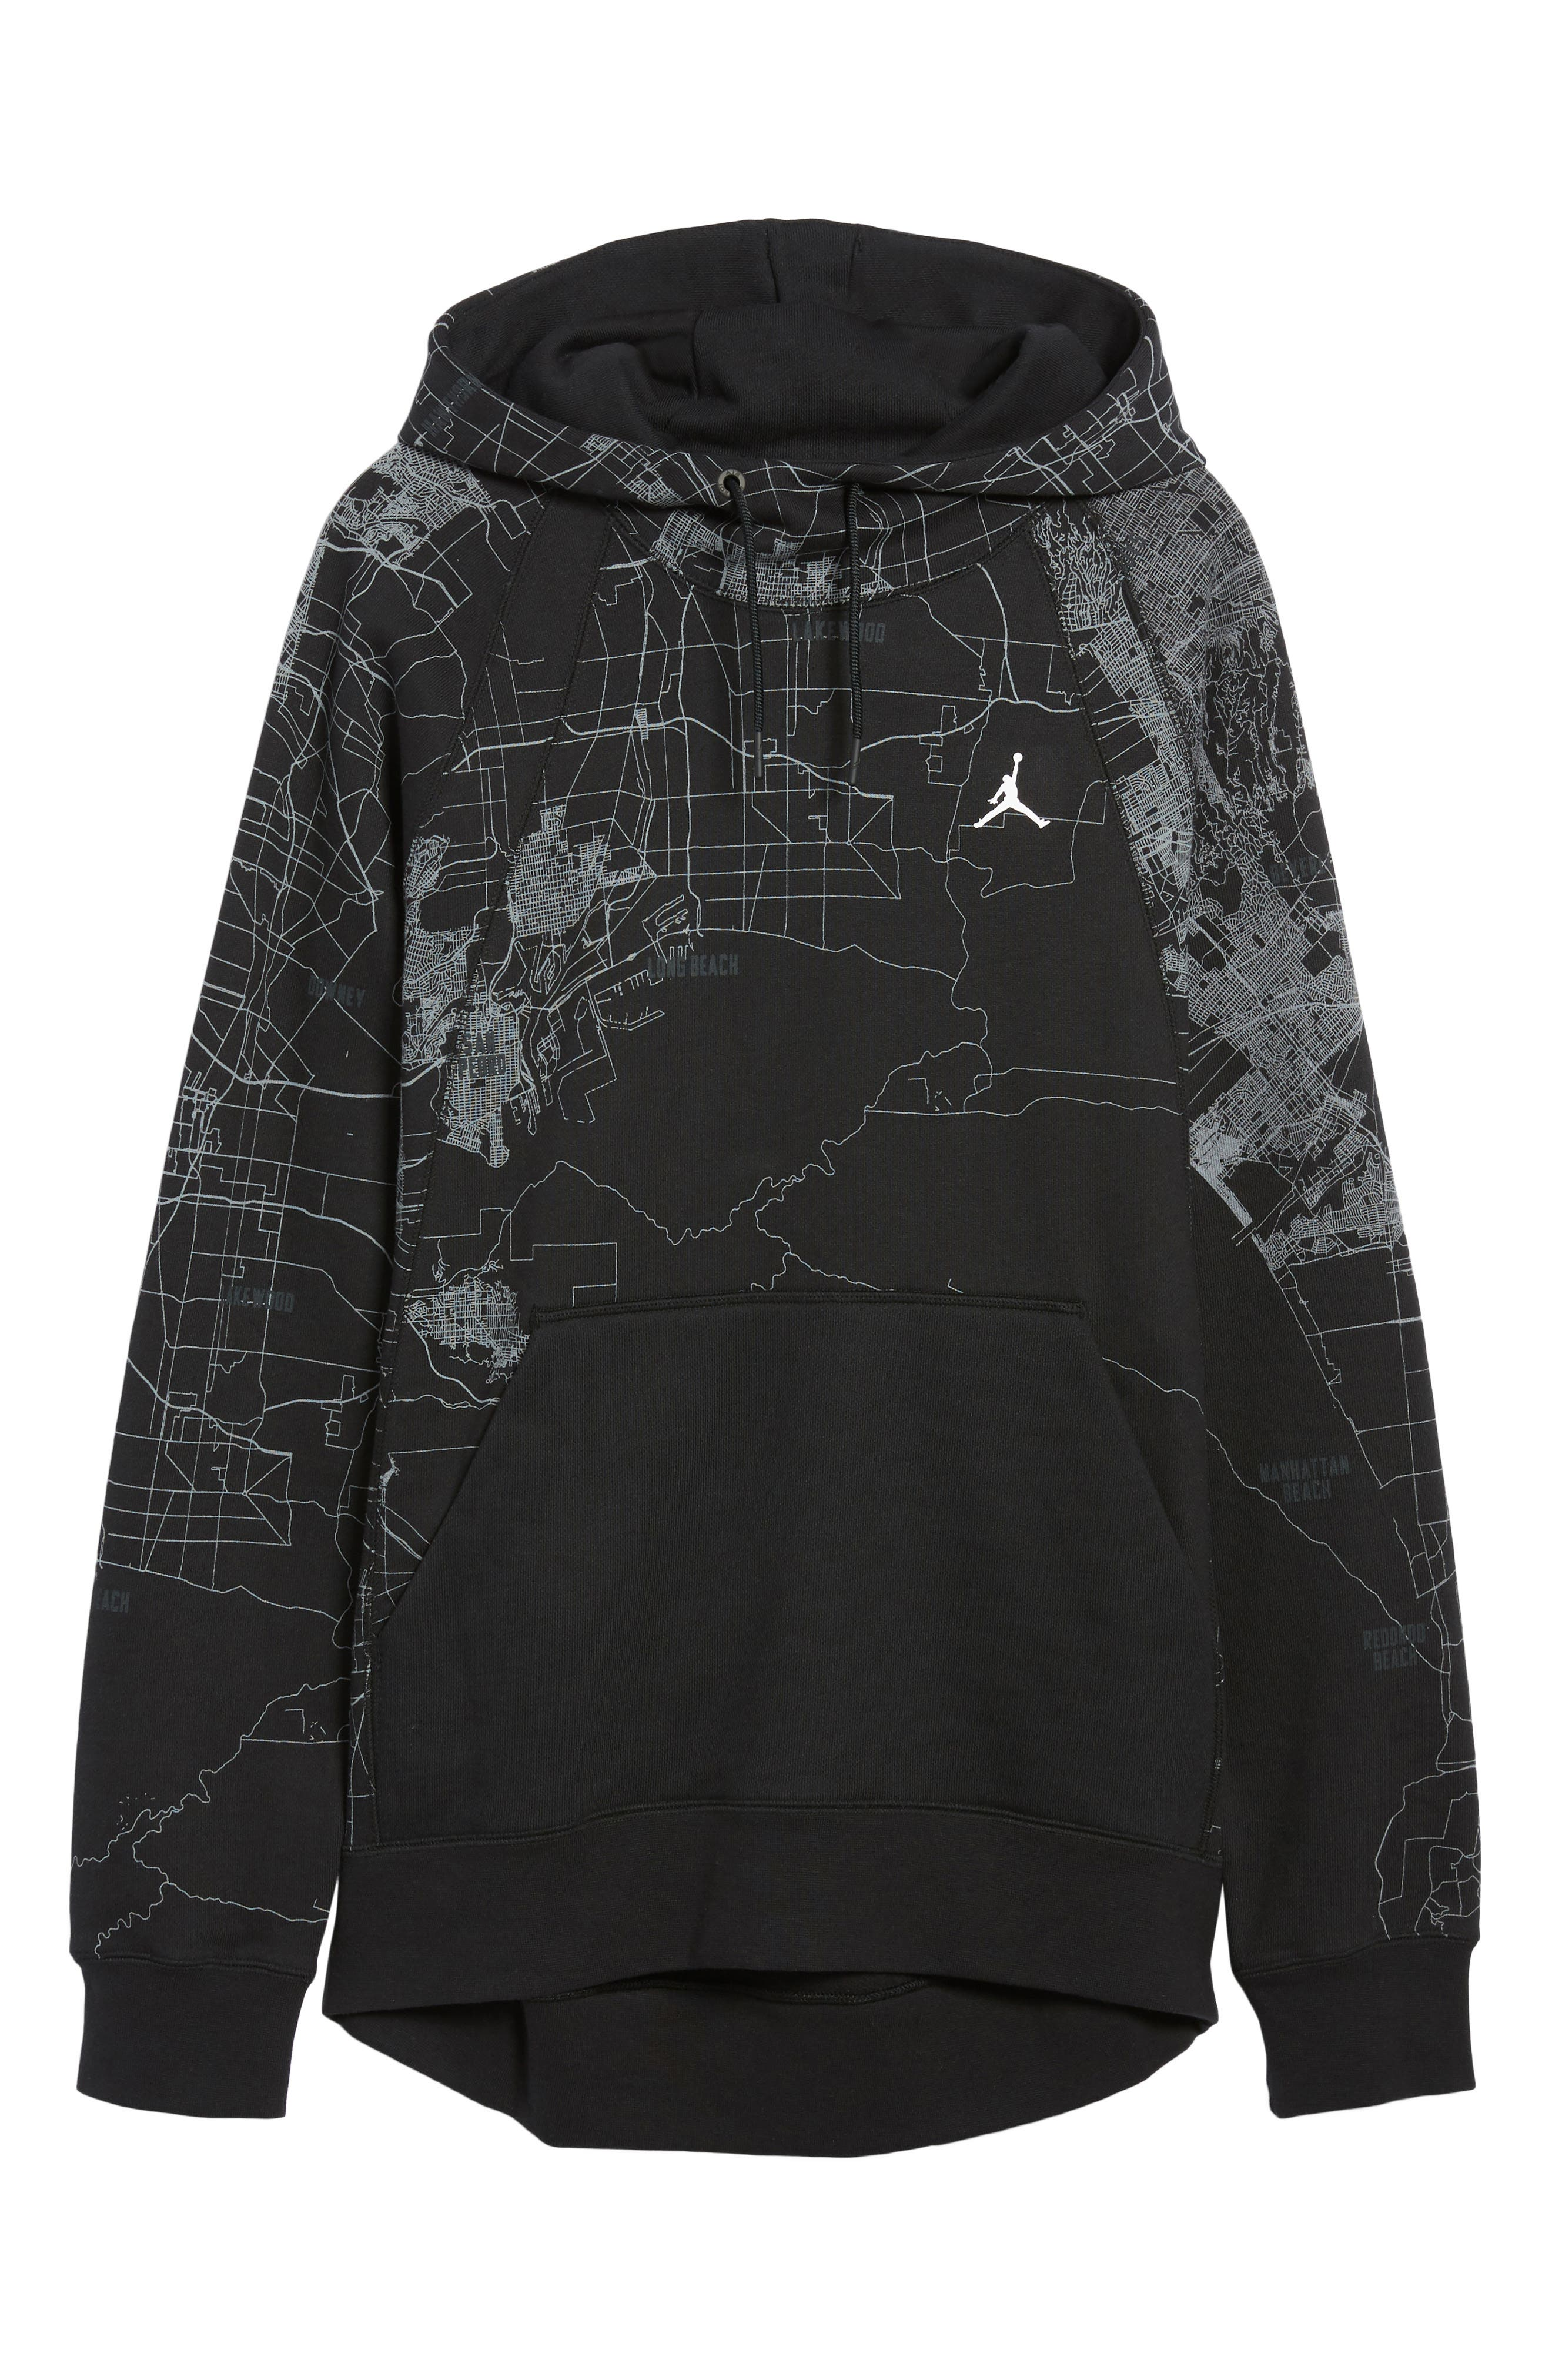 Wings Graphic Hoodie,                             Alternate thumbnail 6, color,                             010